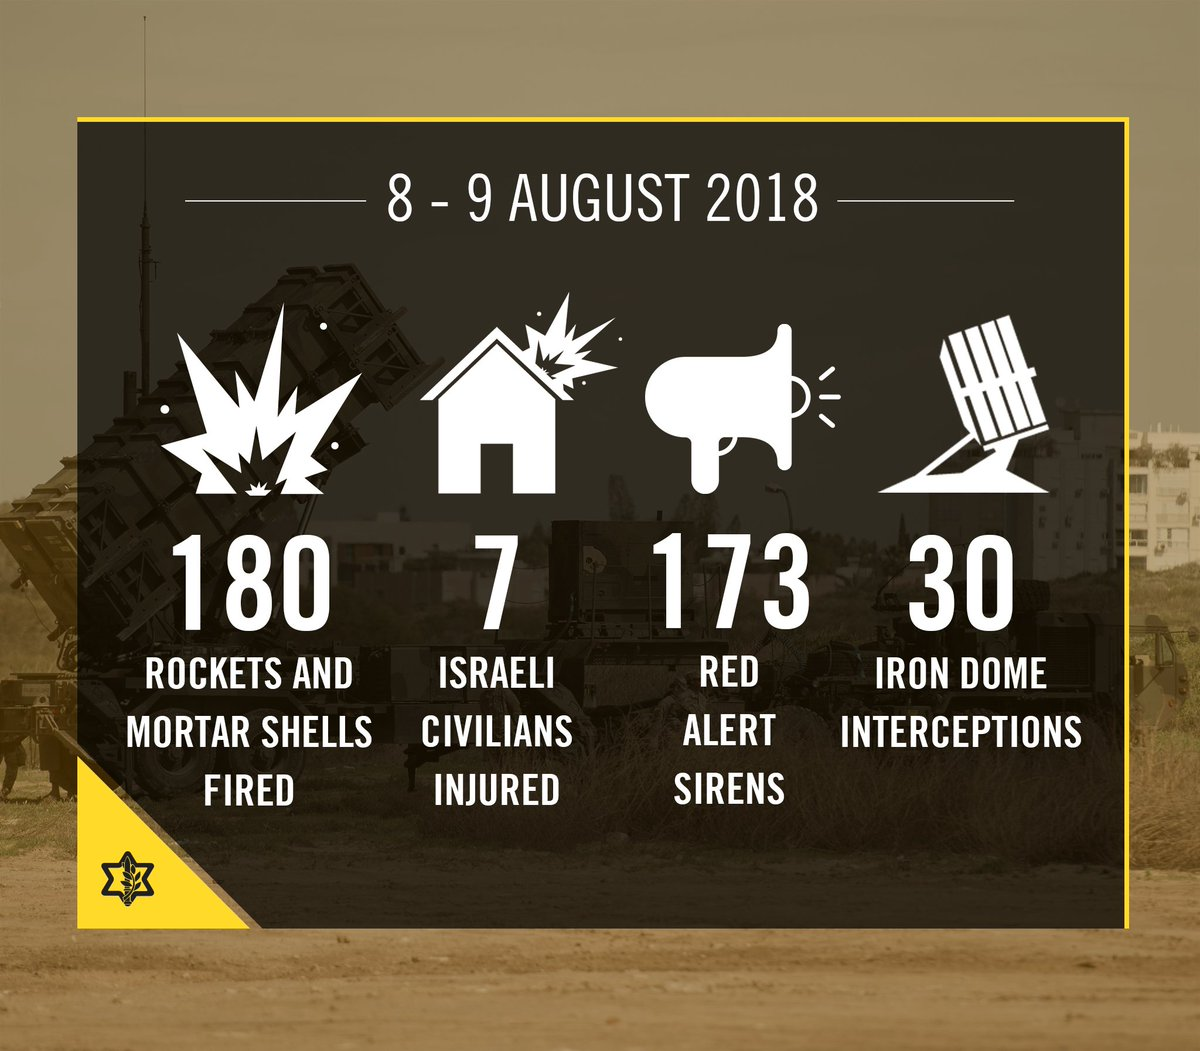 Since last night: 🔺Approx. 180 rockets were launched from the Gaza Strip at Israel. 🔺The Iron Dome aerial defense system intercepted over 30 launches. The majority of projectiles landed in open areas. 🔺In response, the IDF targeted over 150 terror targets in the Gaza Strip